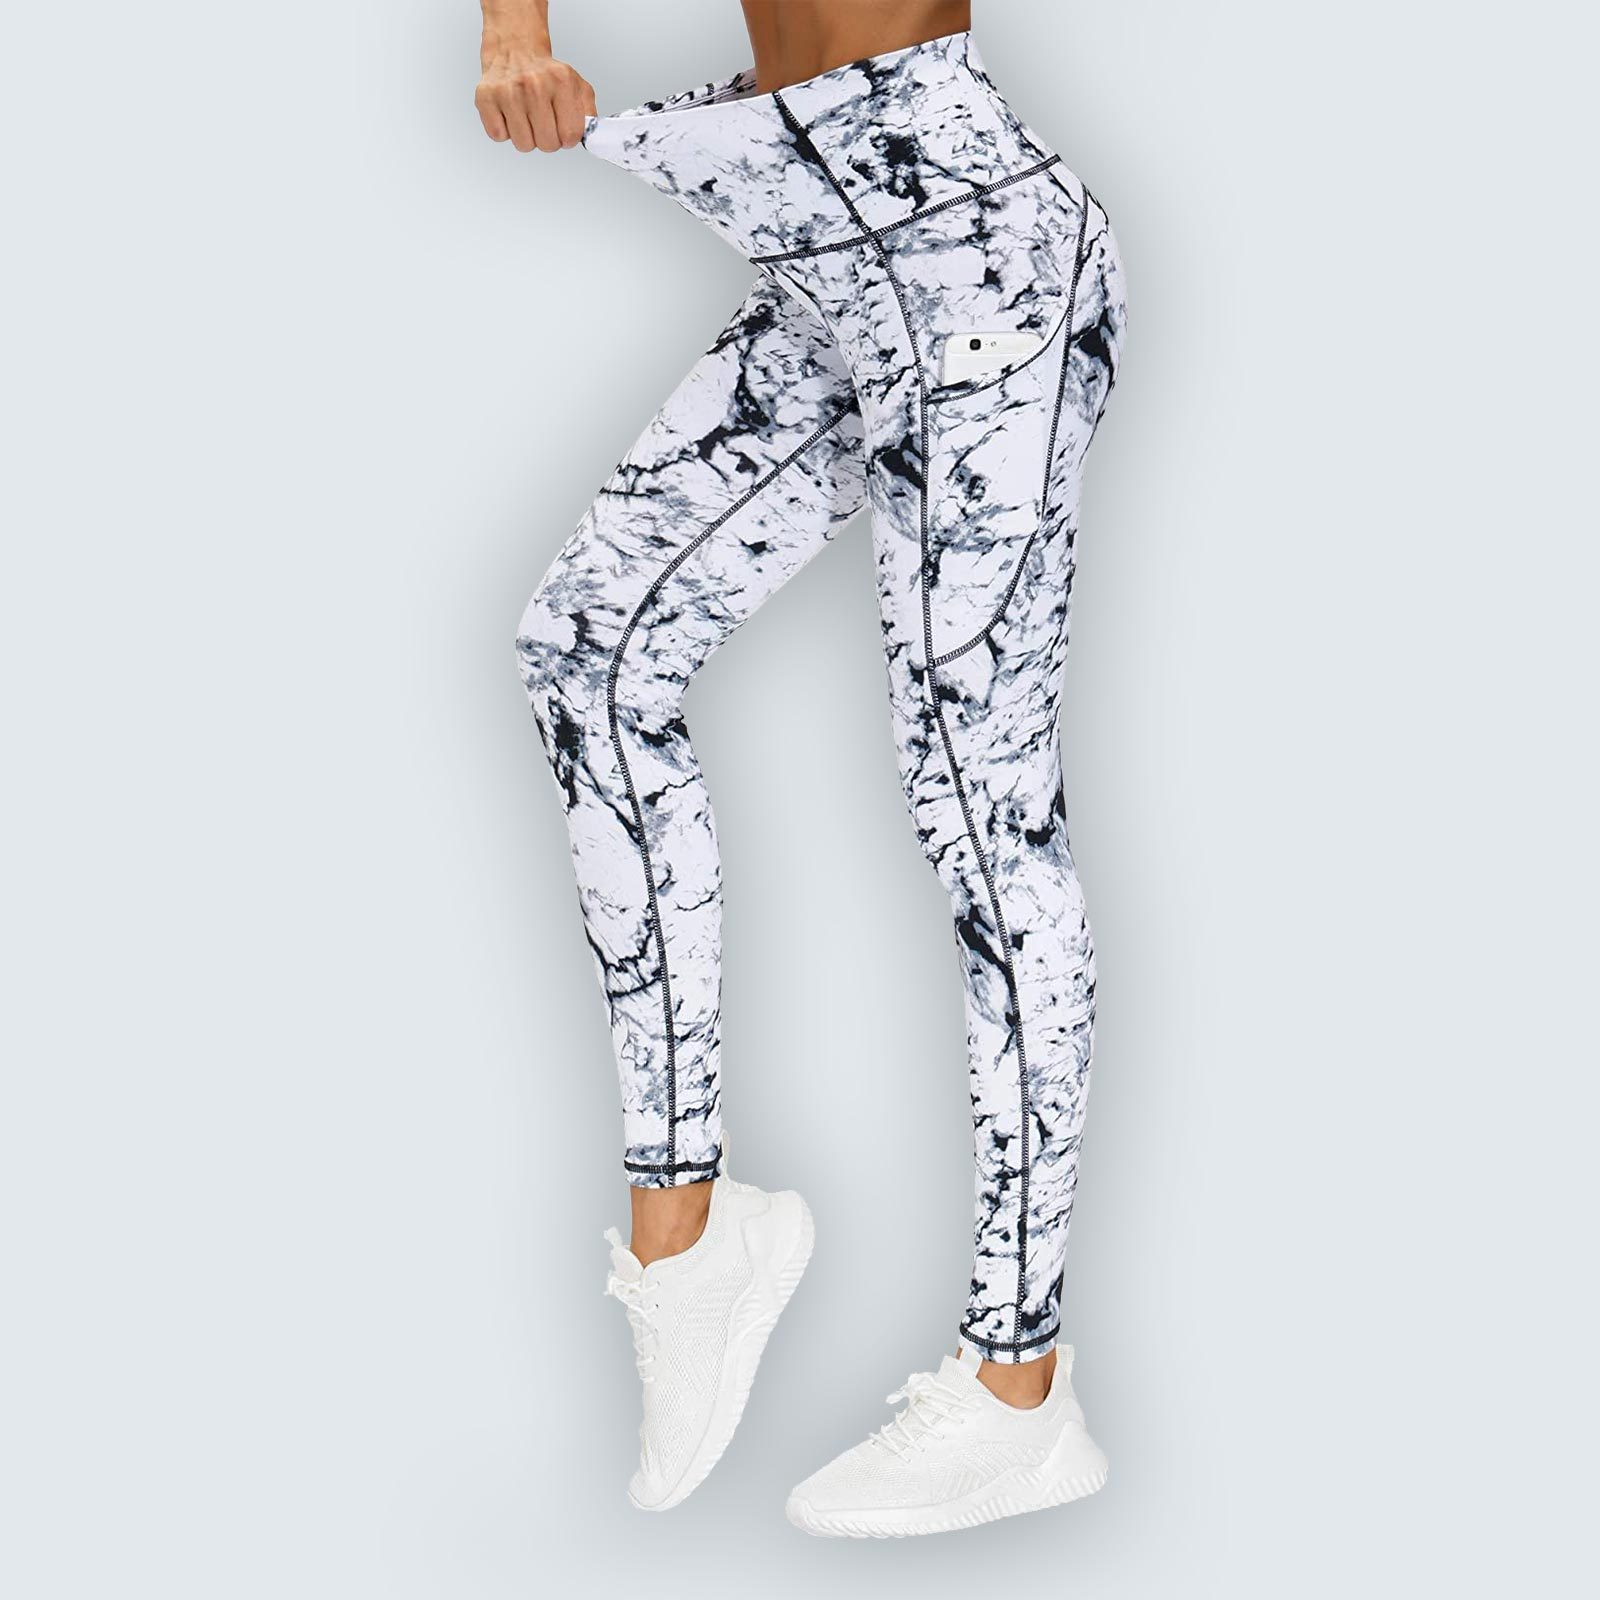 Best leggings for demanding workouts: The Gym People High Waist Yoga Pants